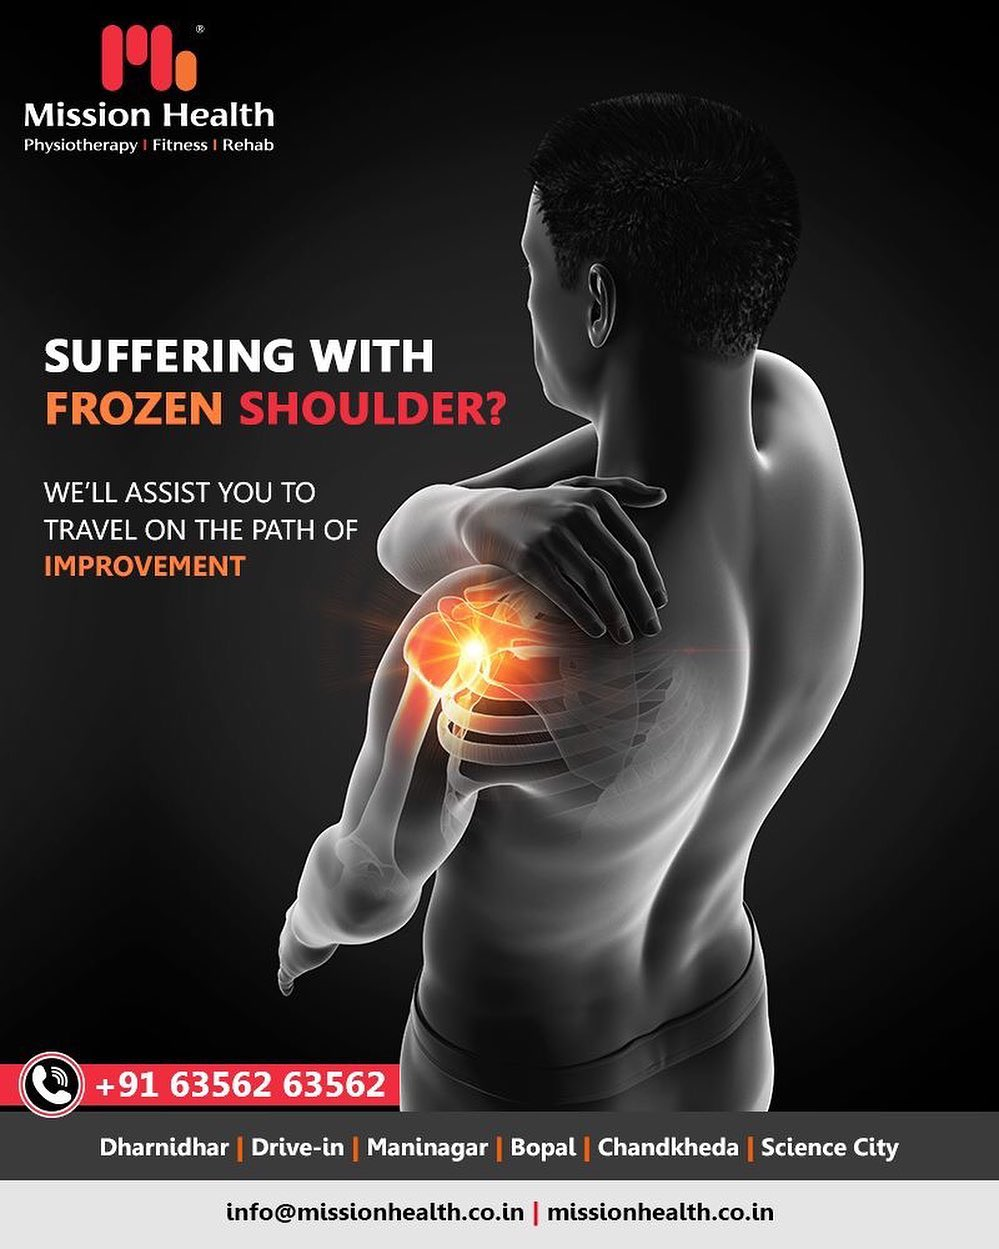 #Frozenshoulder can be extremely painful & difficult to deal with since it restricts your day to day movements!  Trust us with your frozen shoulder treatment!  #MissionHealth #MissionHealthIndia #AbilityClinic #MovementIsLife